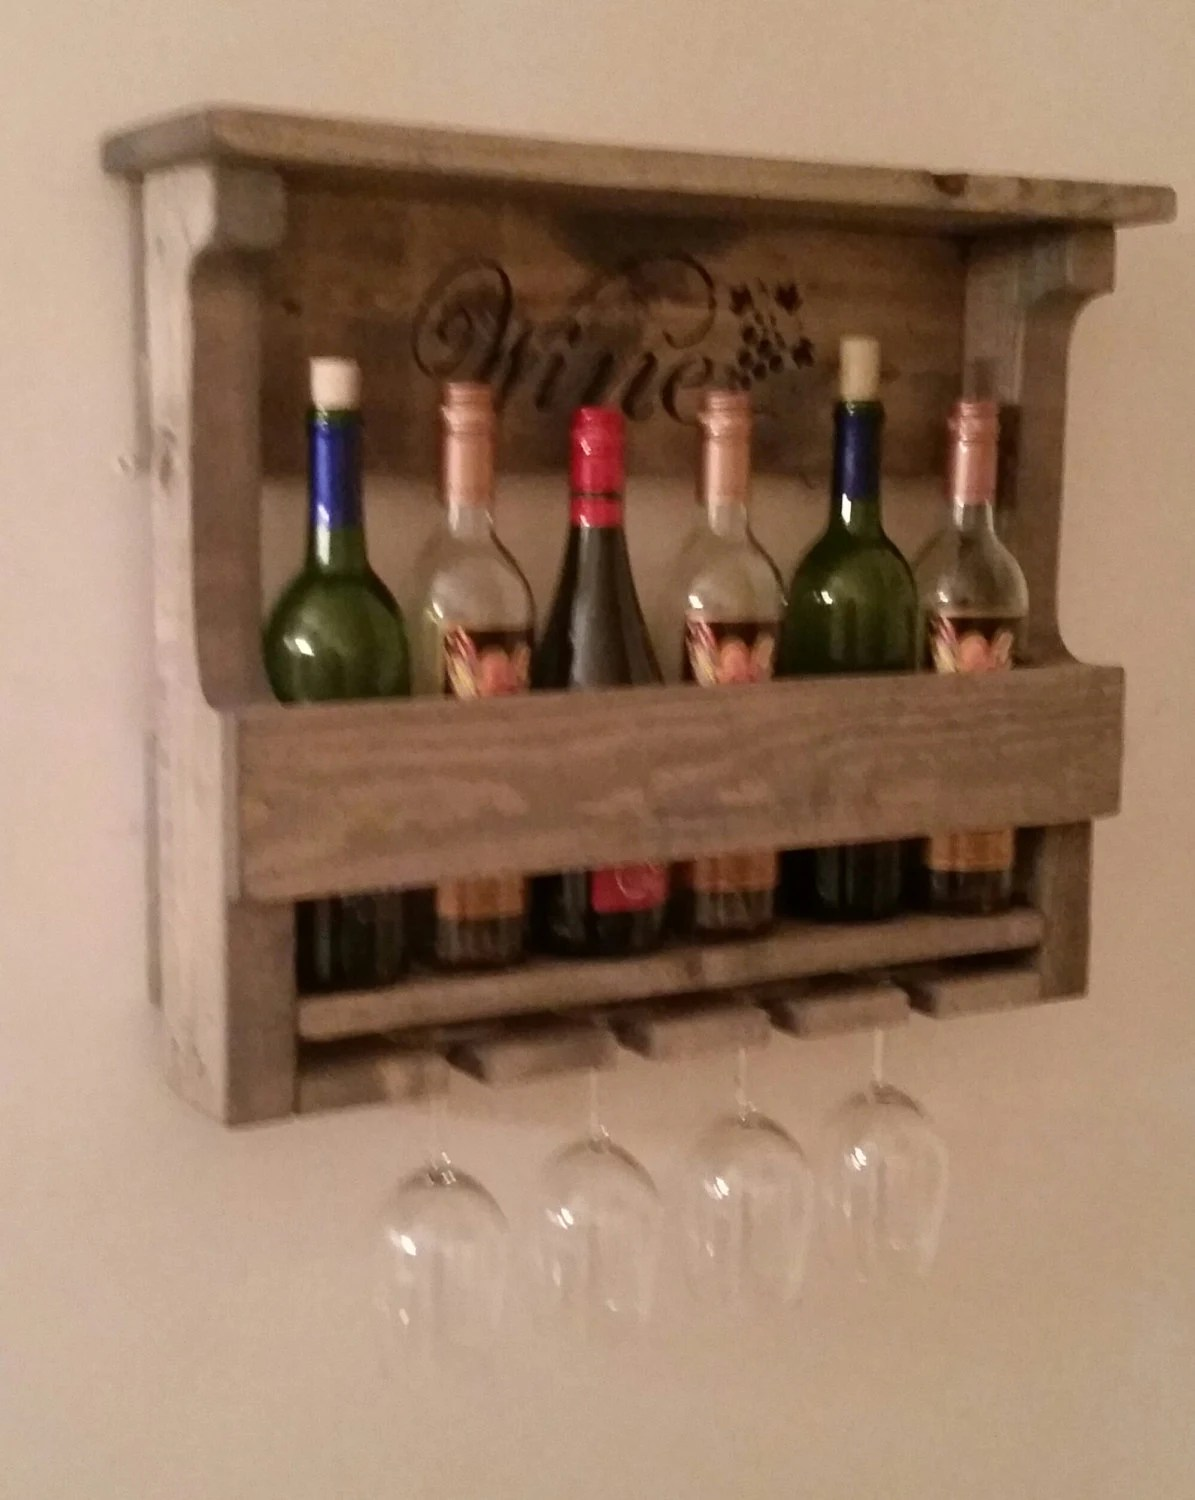 Cave A Vin Palette Palette Wine Rack Rack Vin Rustique Cabinet D Alcool Gris Cabine Décor Rustique Wall Decor Man Cave Bar Decor